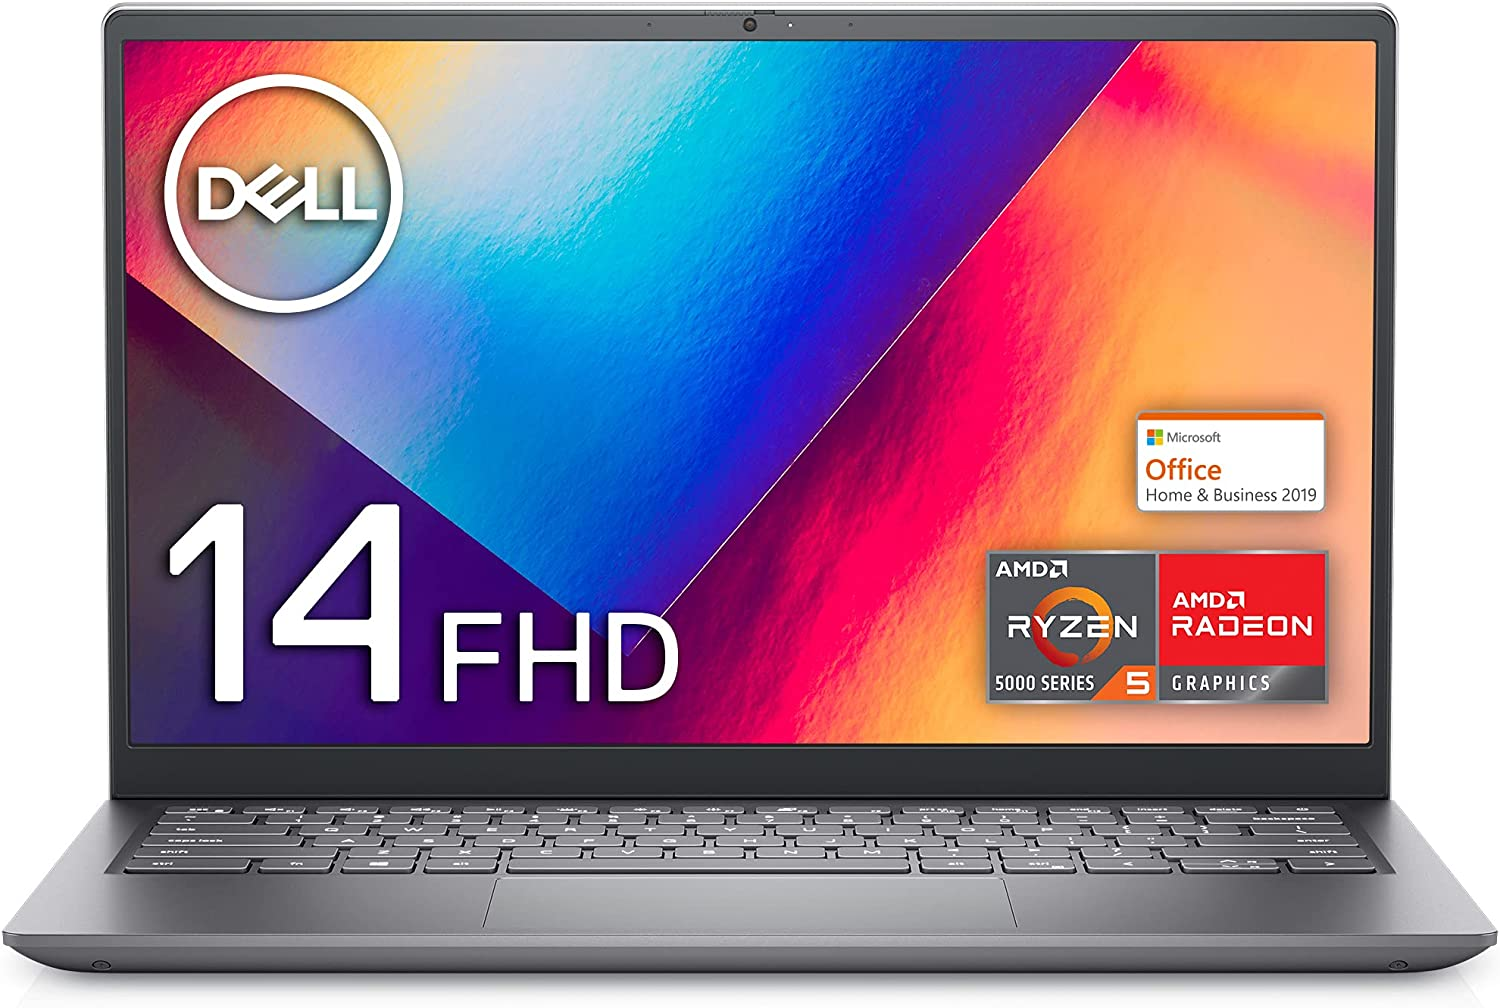 <br /> 【MS Office Home&Business 2019搭載】Dell モバイルノートパソコン Inspiron 14